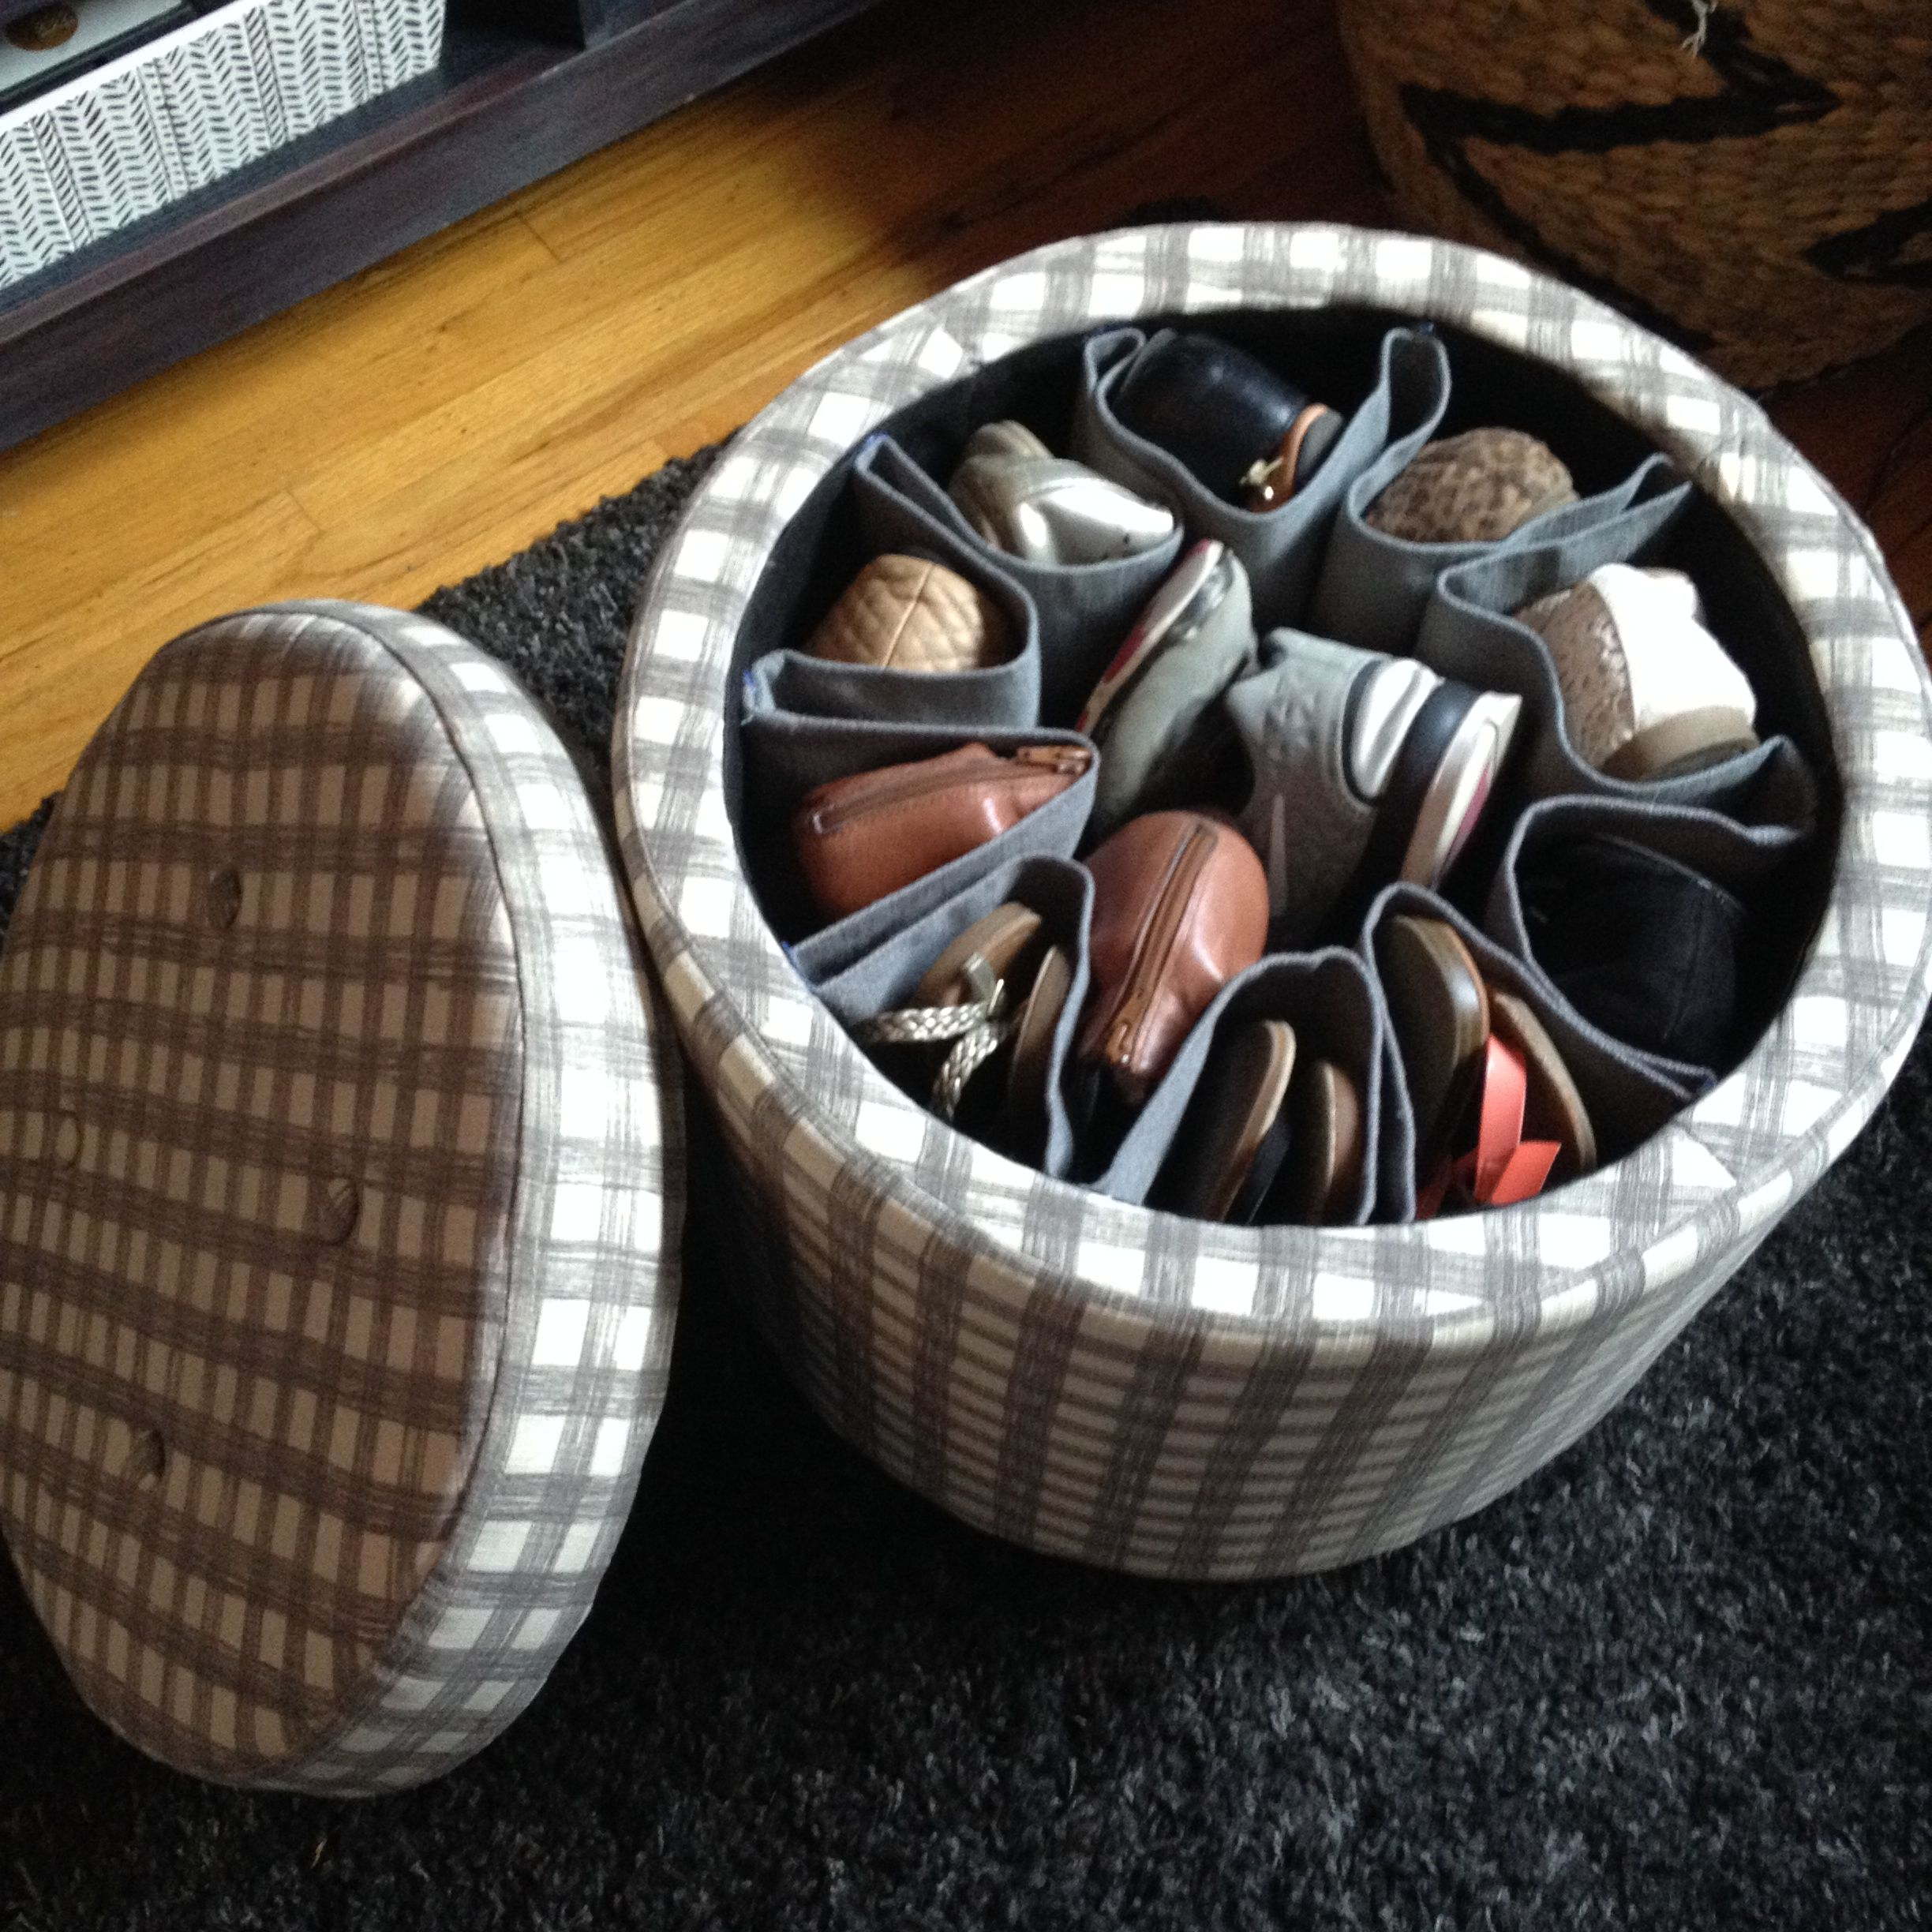 Swell Diy Shoe Storage Ottoman What A Great Idea Fabulous Ive Pdpeps Interior Chair Design Pdpepsorg